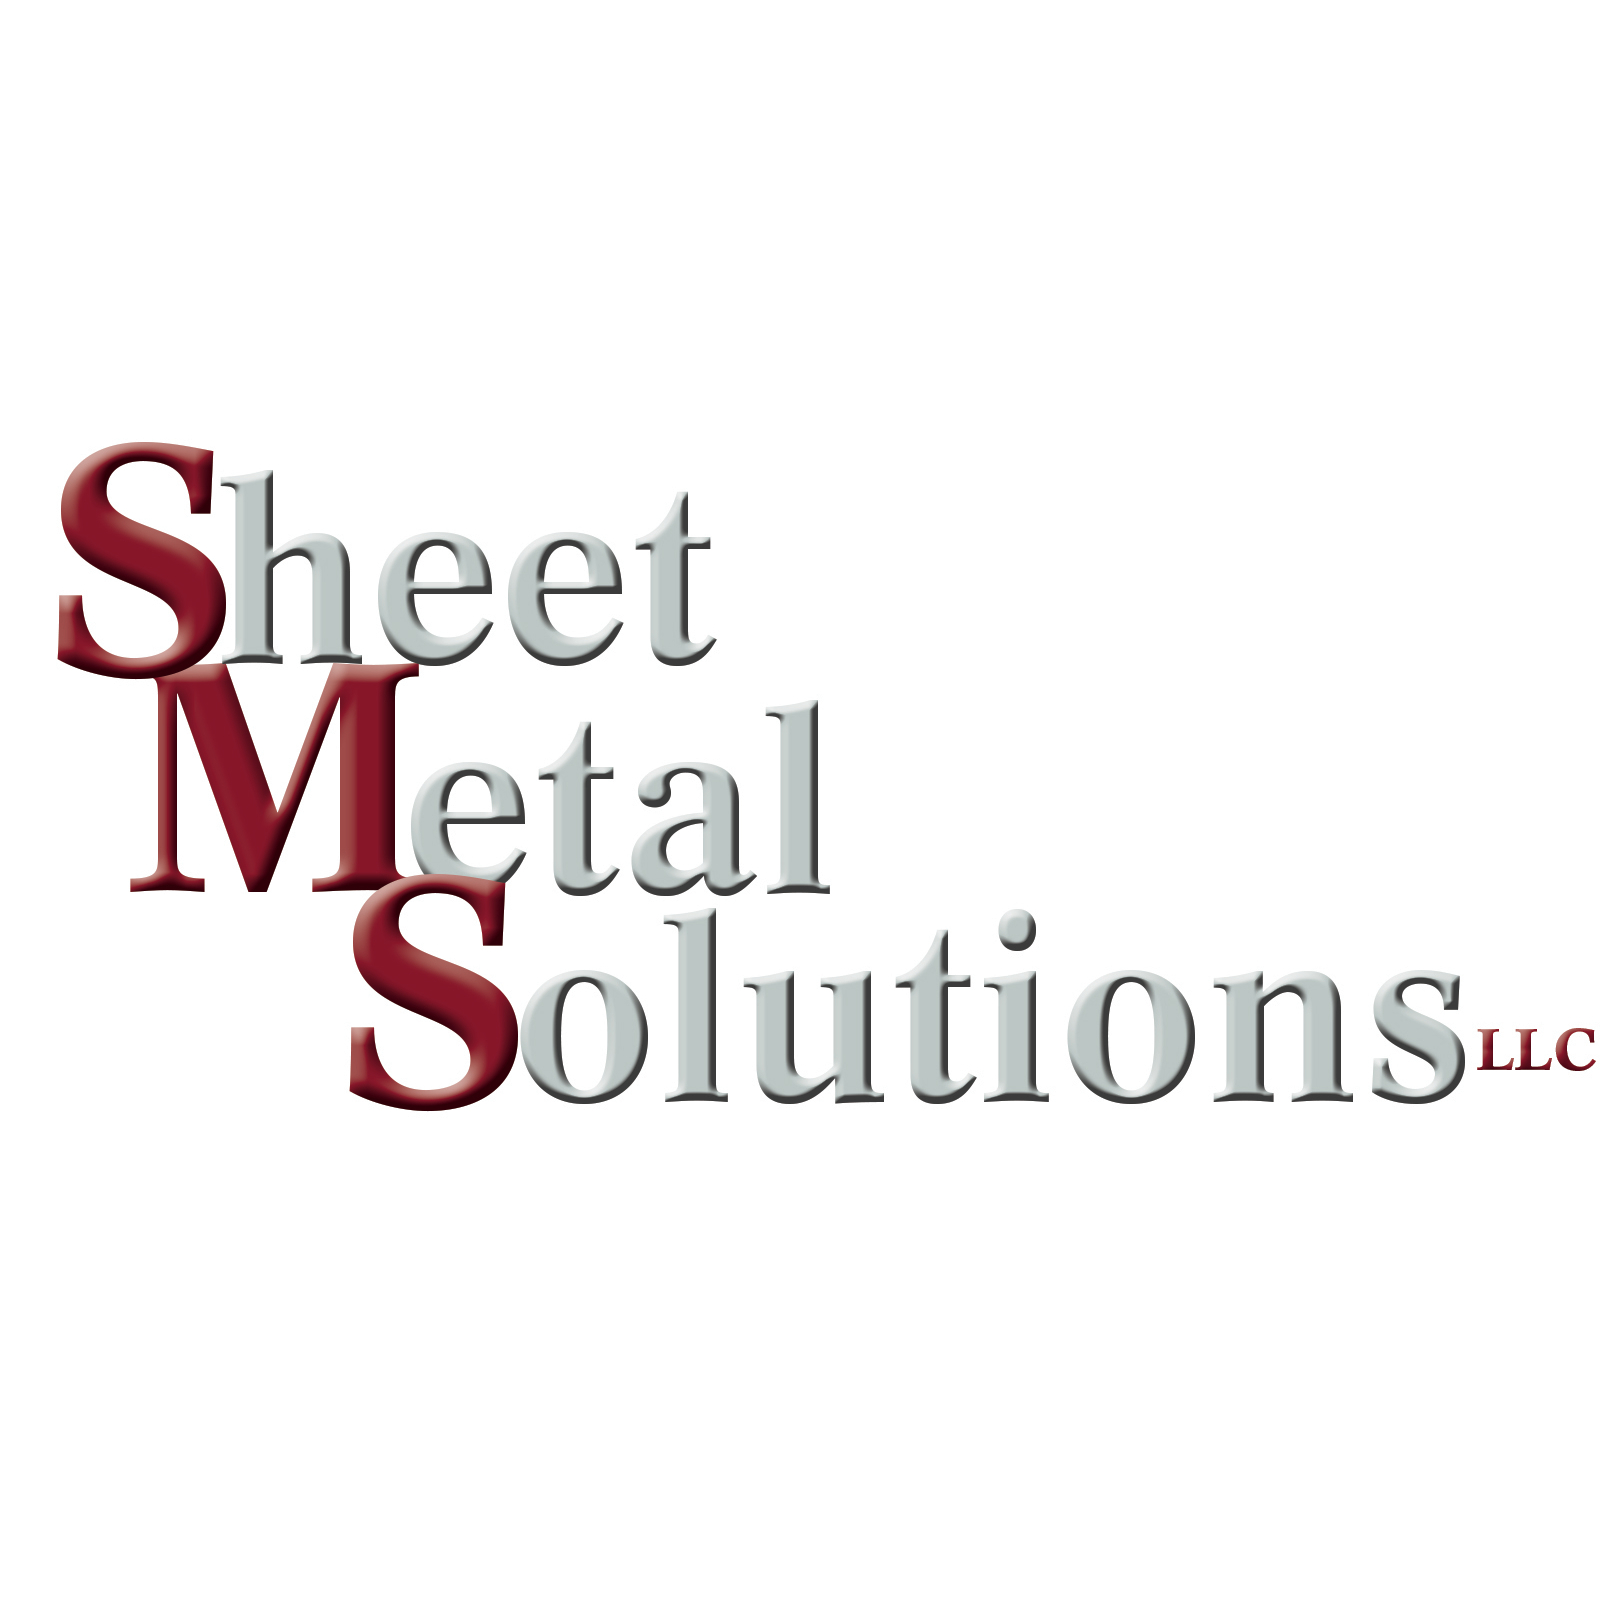 Sheet Metal Solutions, LLC